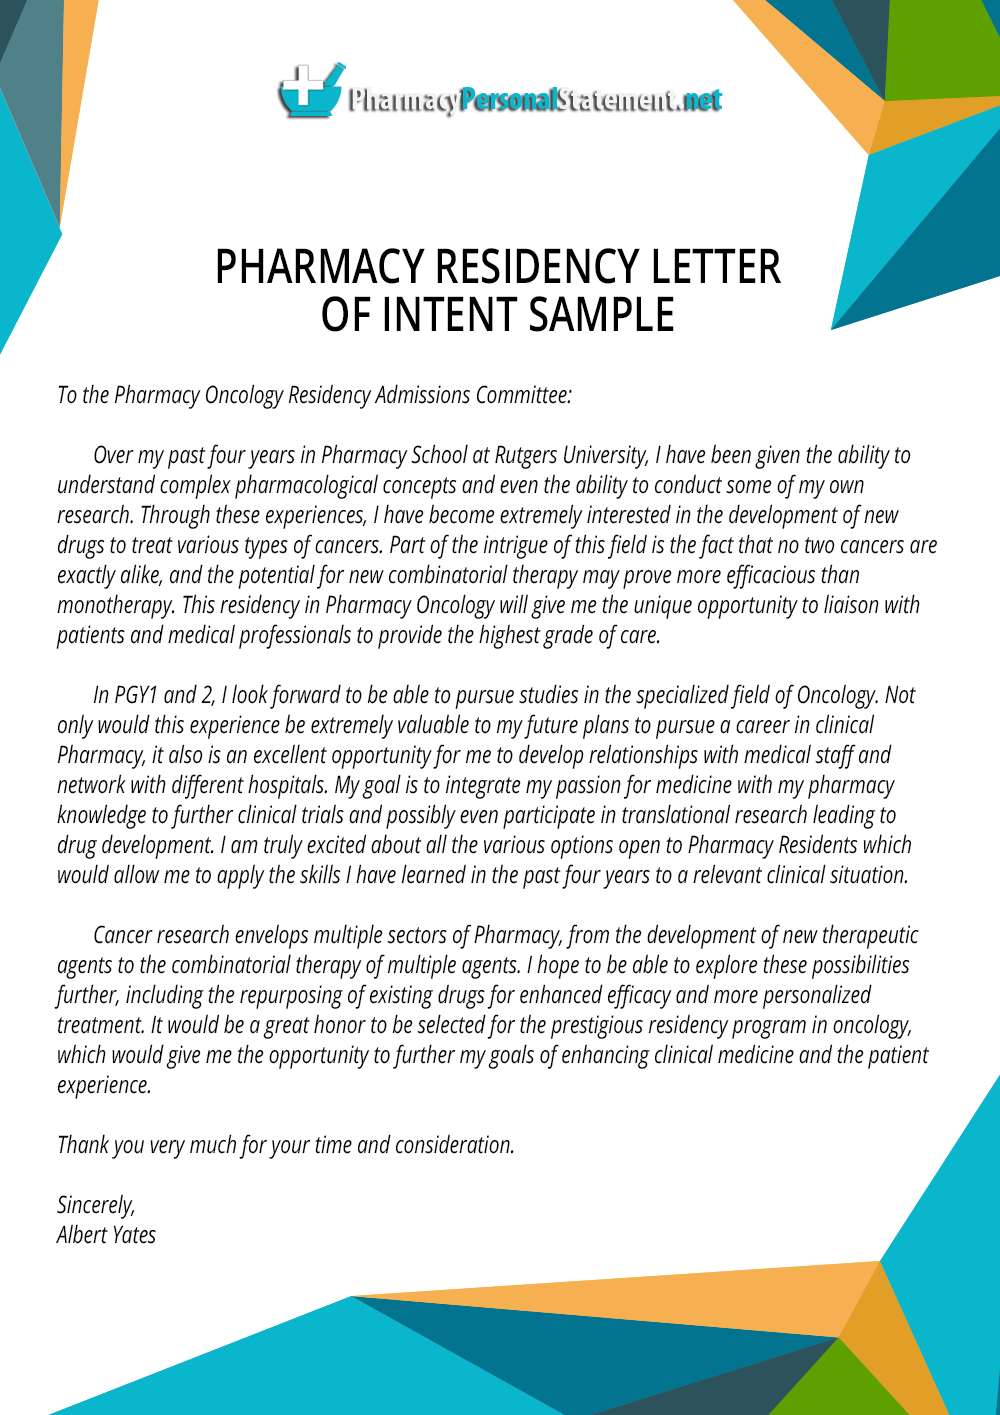 Pharmacy residency letter of intent sample by pharmacyapplication on pharmacyapplication pharmacy residency letter of intent sample by pharmacyapplication spiritdancerdesigns Choice Image